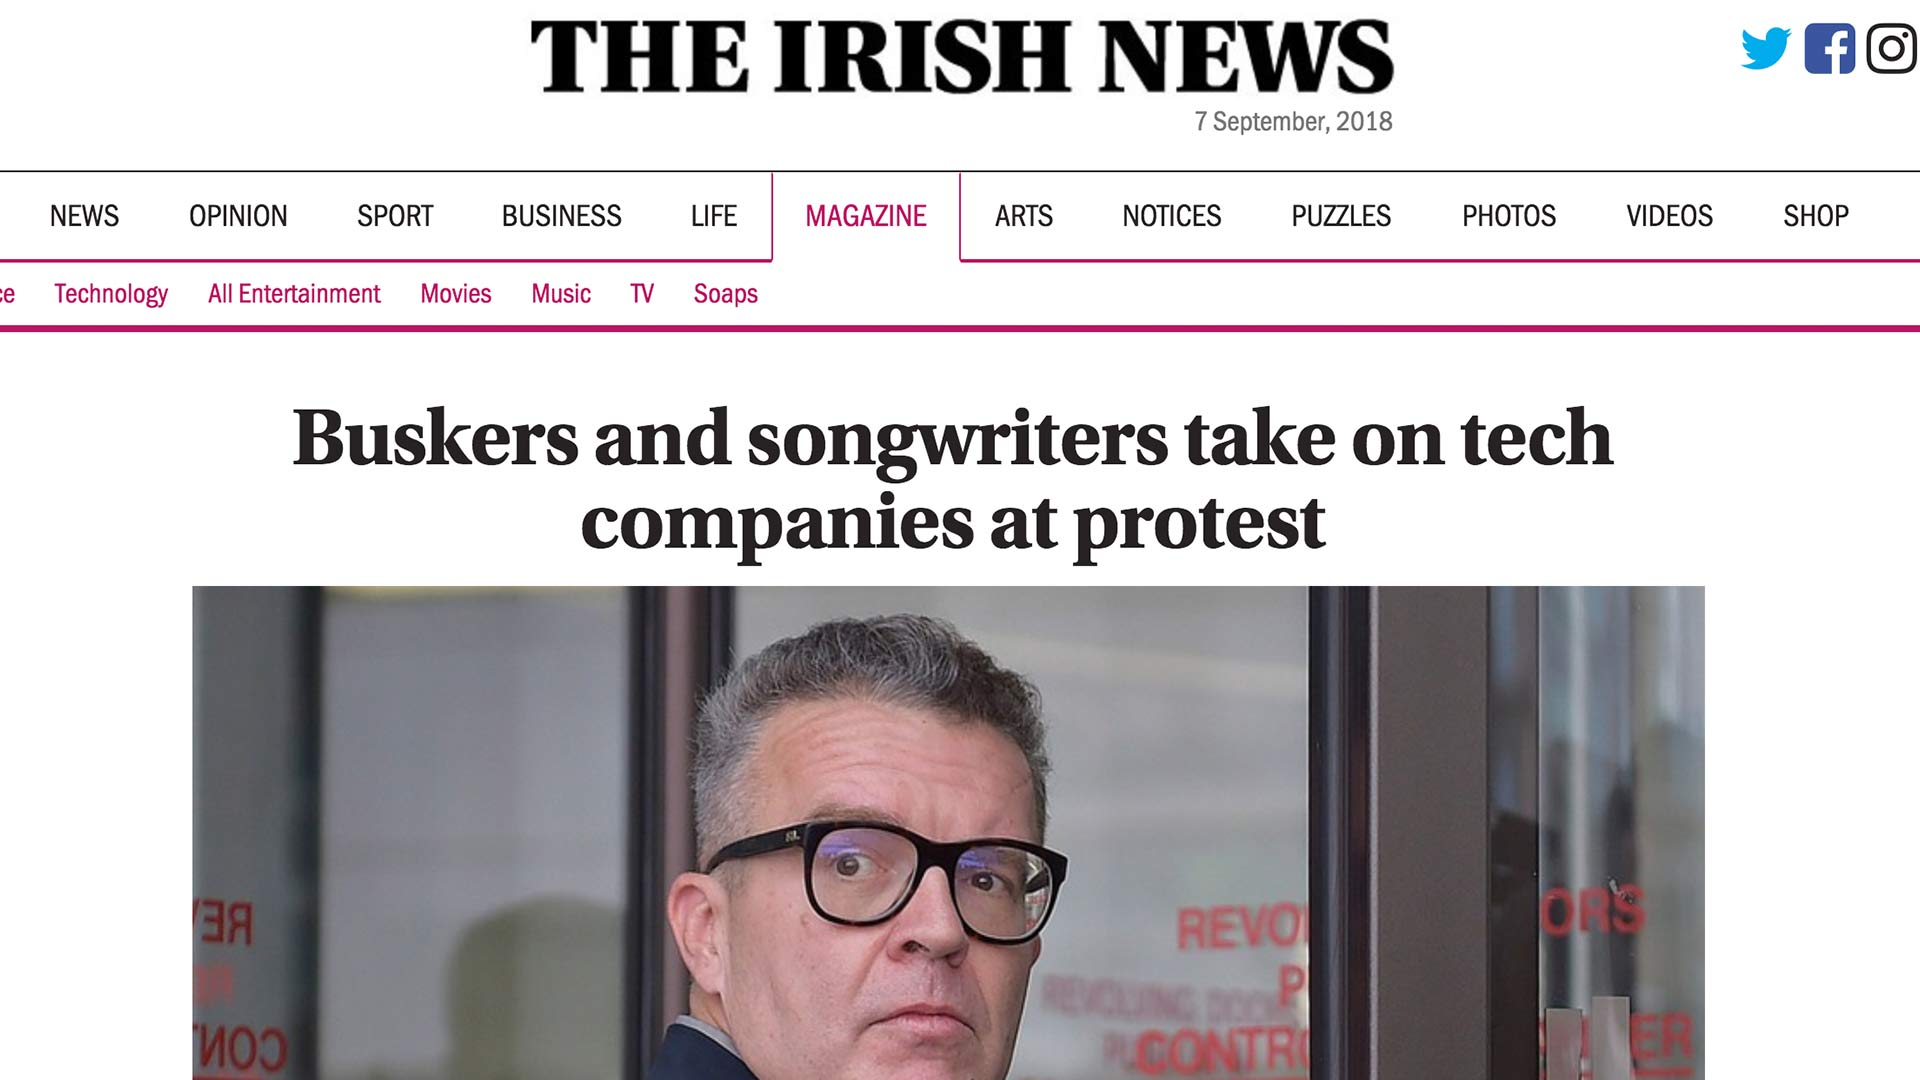 Fairness Rocks News Buskers and songwriters take on tech companies at protest